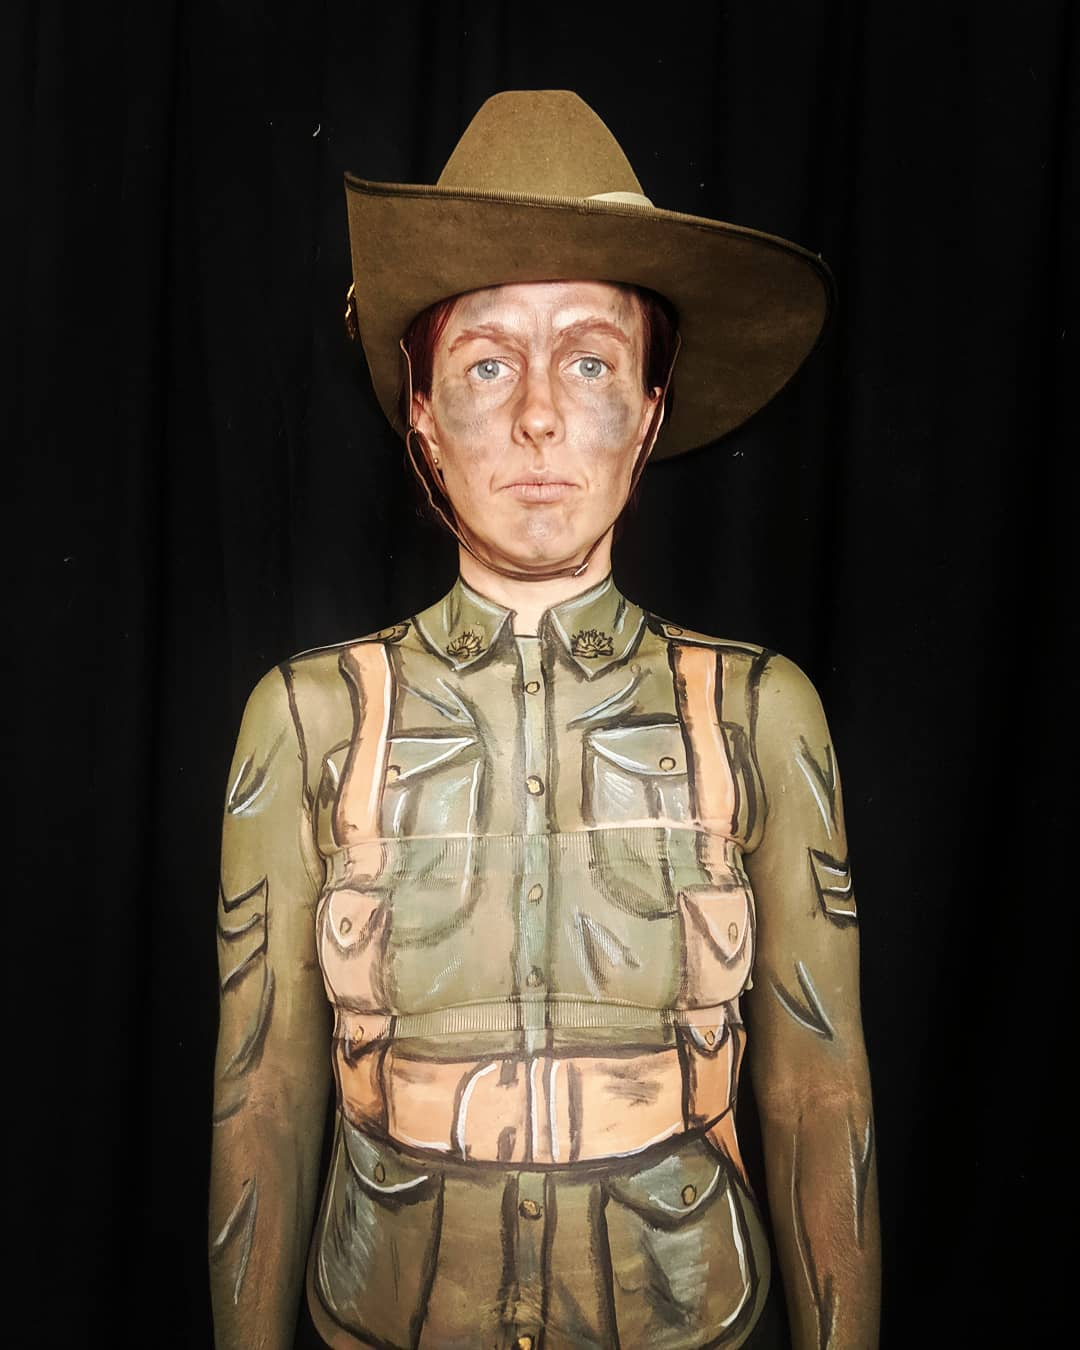 Gallipoli Soldier Uniform